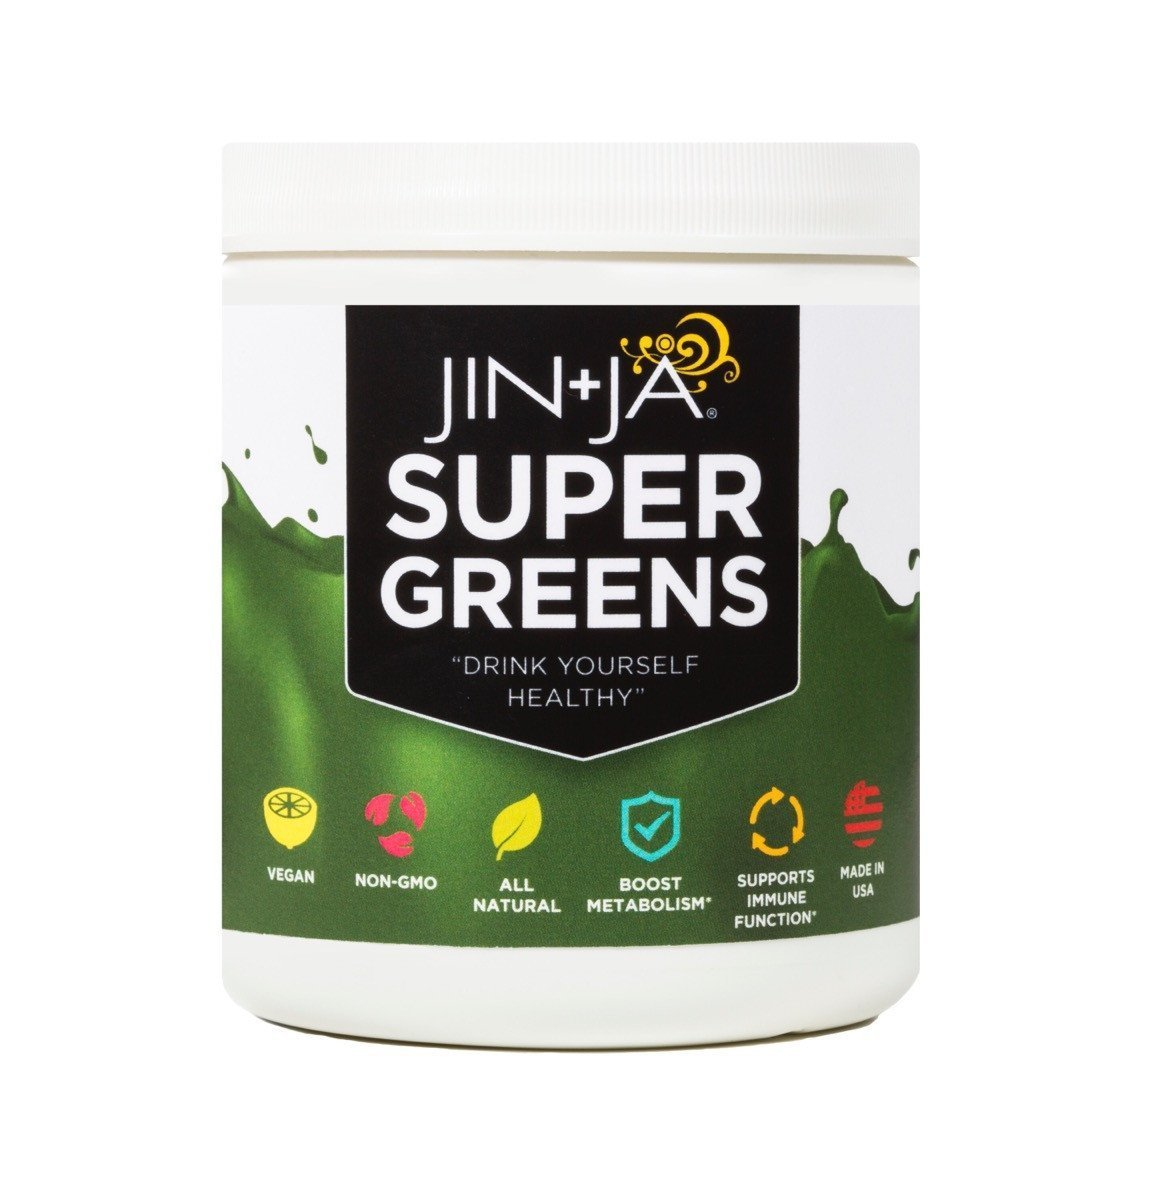 Jin-Ja Super Greens, Digestive Health Green Drink Powder with Ginger, Green Tea, and Mint - Flavor: Berry